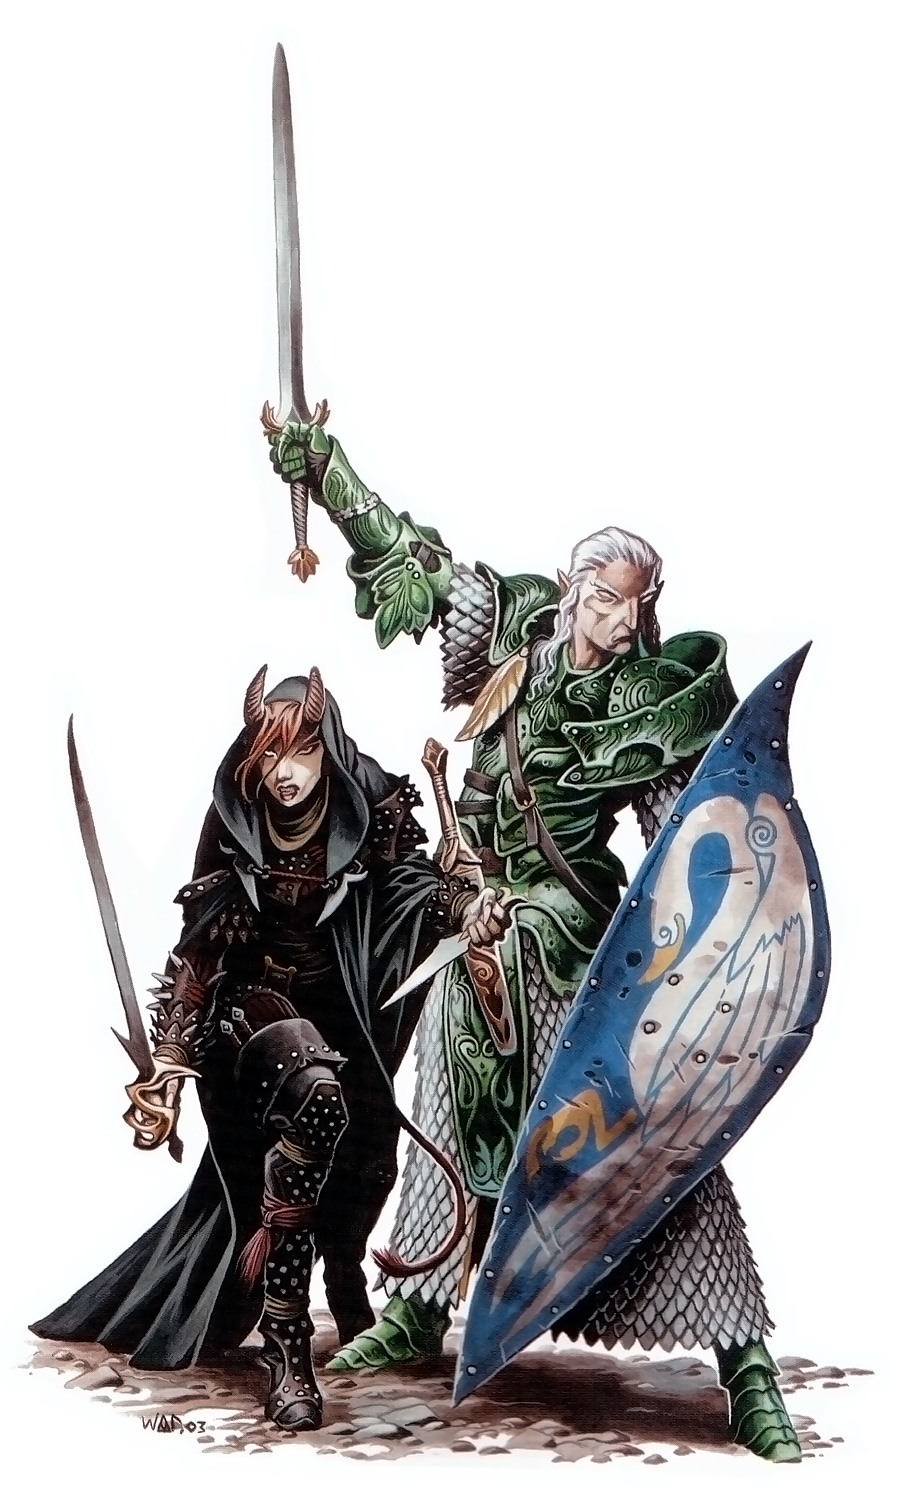 {$tags} Tiefling e aasimar - by Wayne Reynolds Monster Manual 3.5 (2003) © Wizards of the Coast & Hasbro